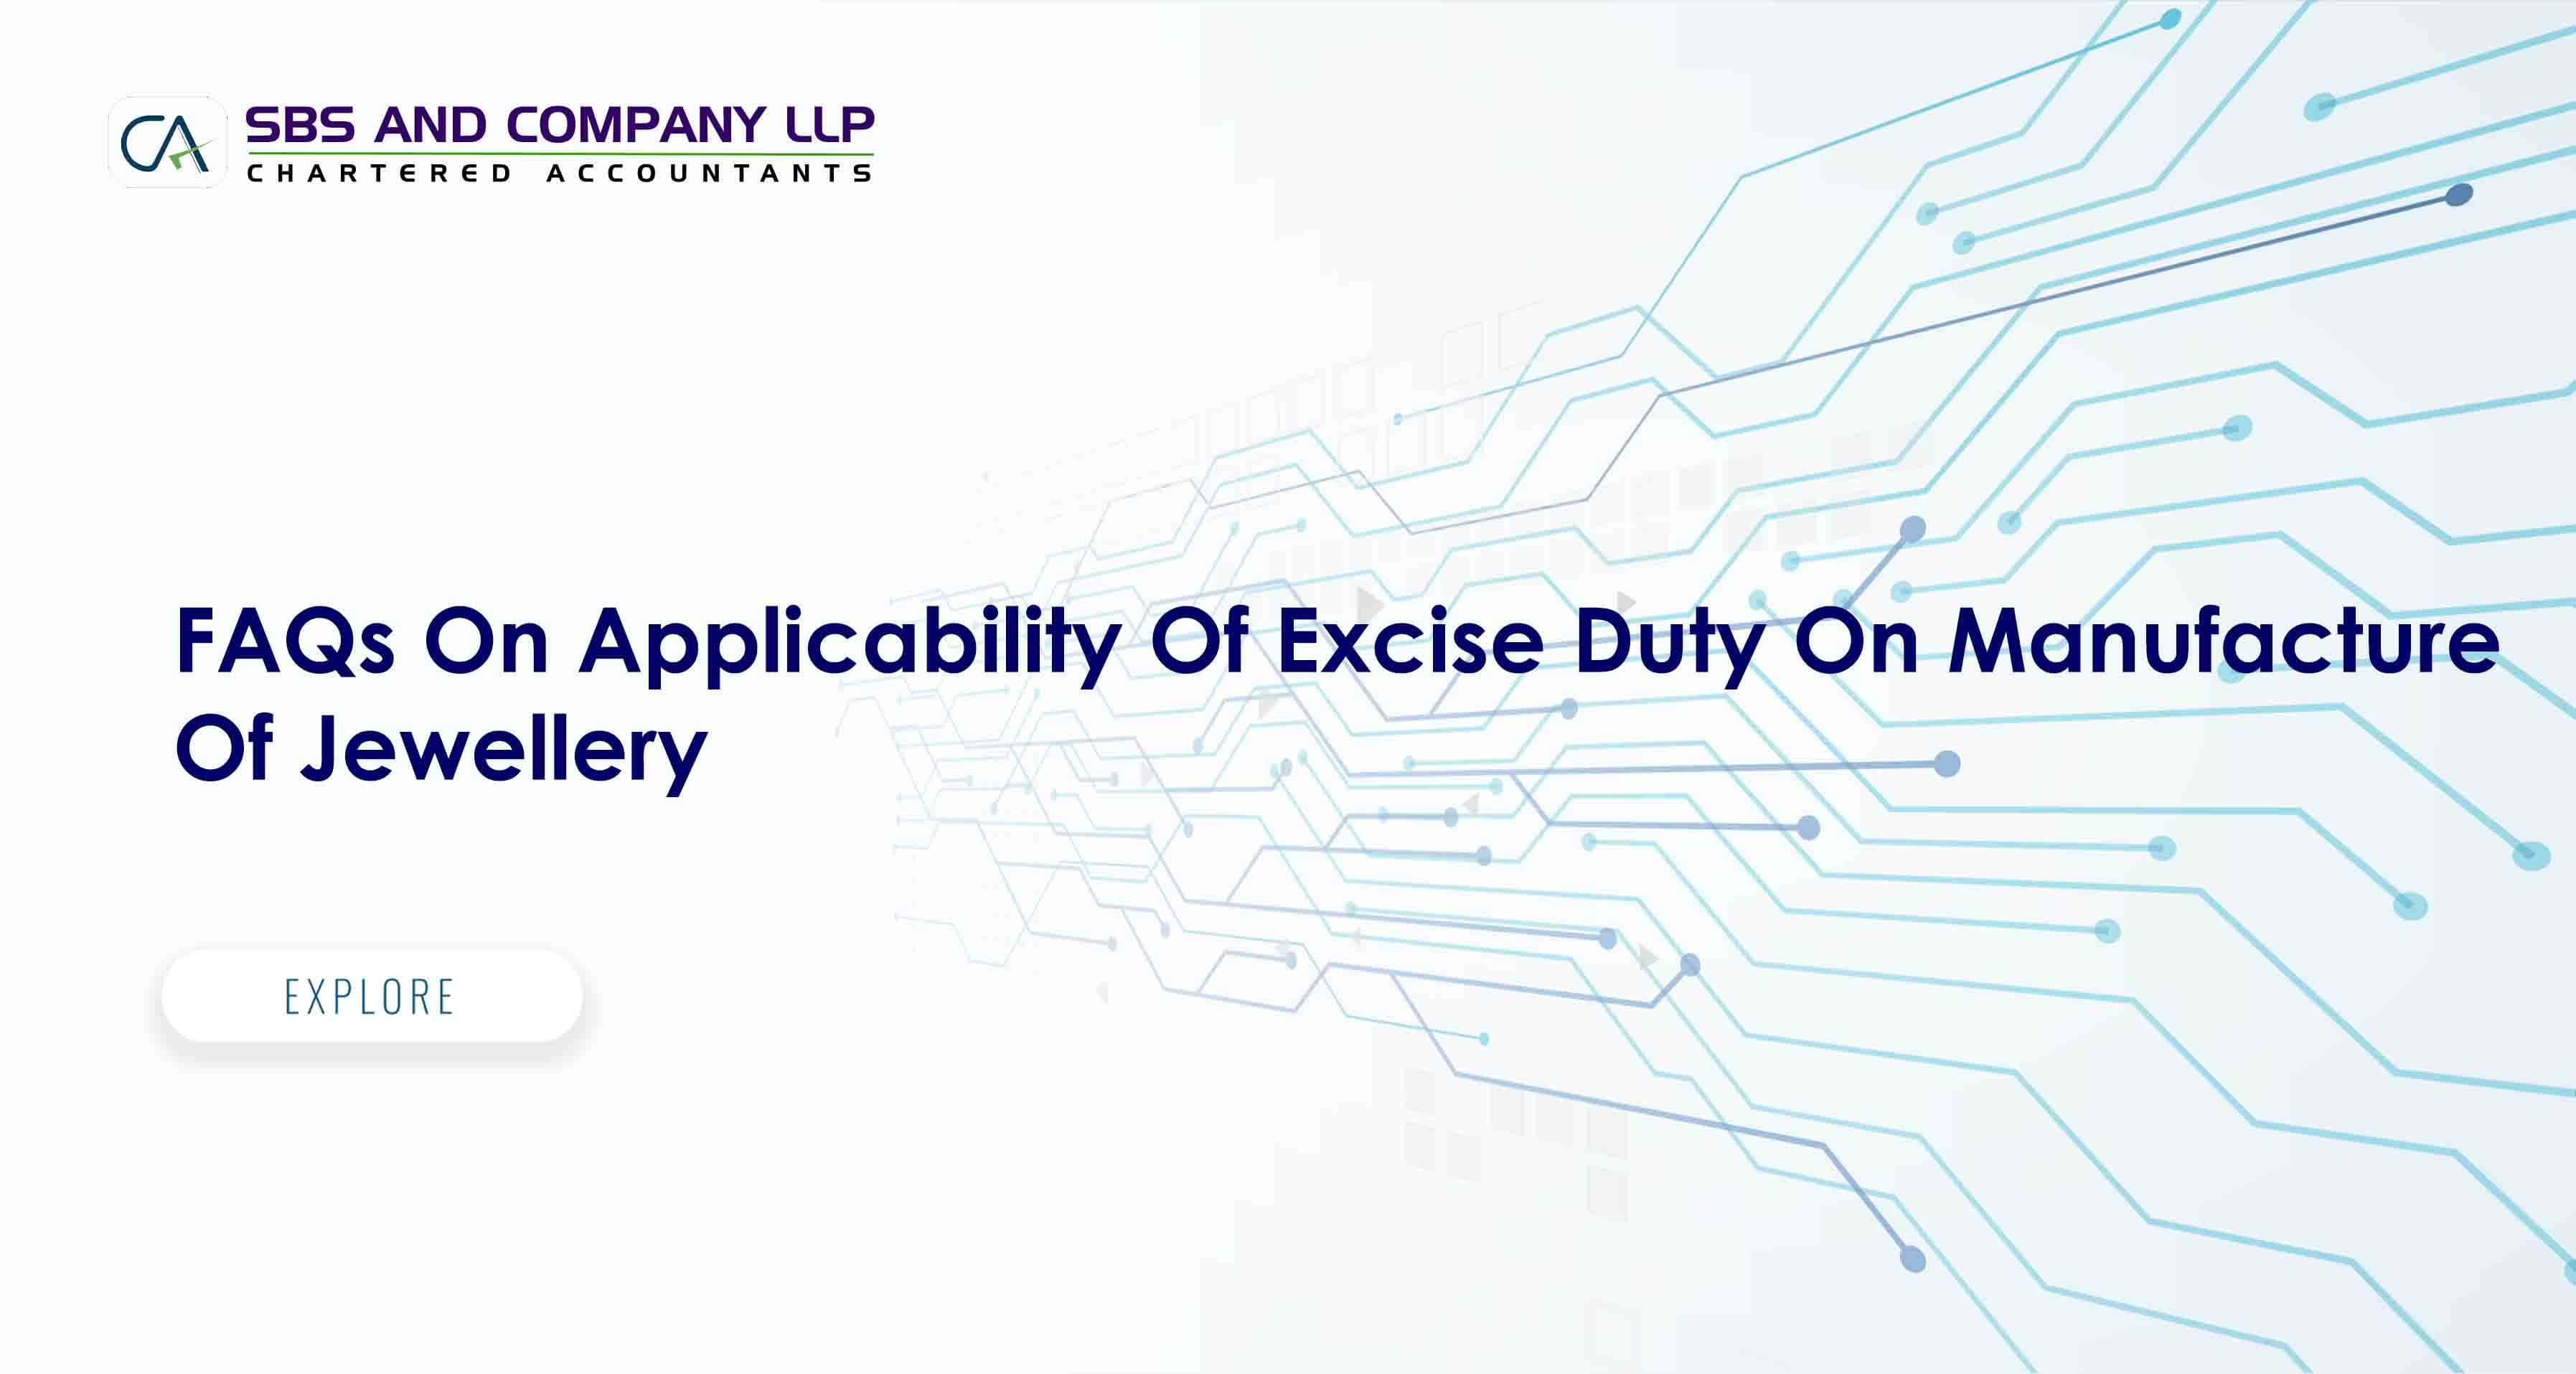 FAQs On Applicability Of Excise Duty On Manufacture Of Jewellery